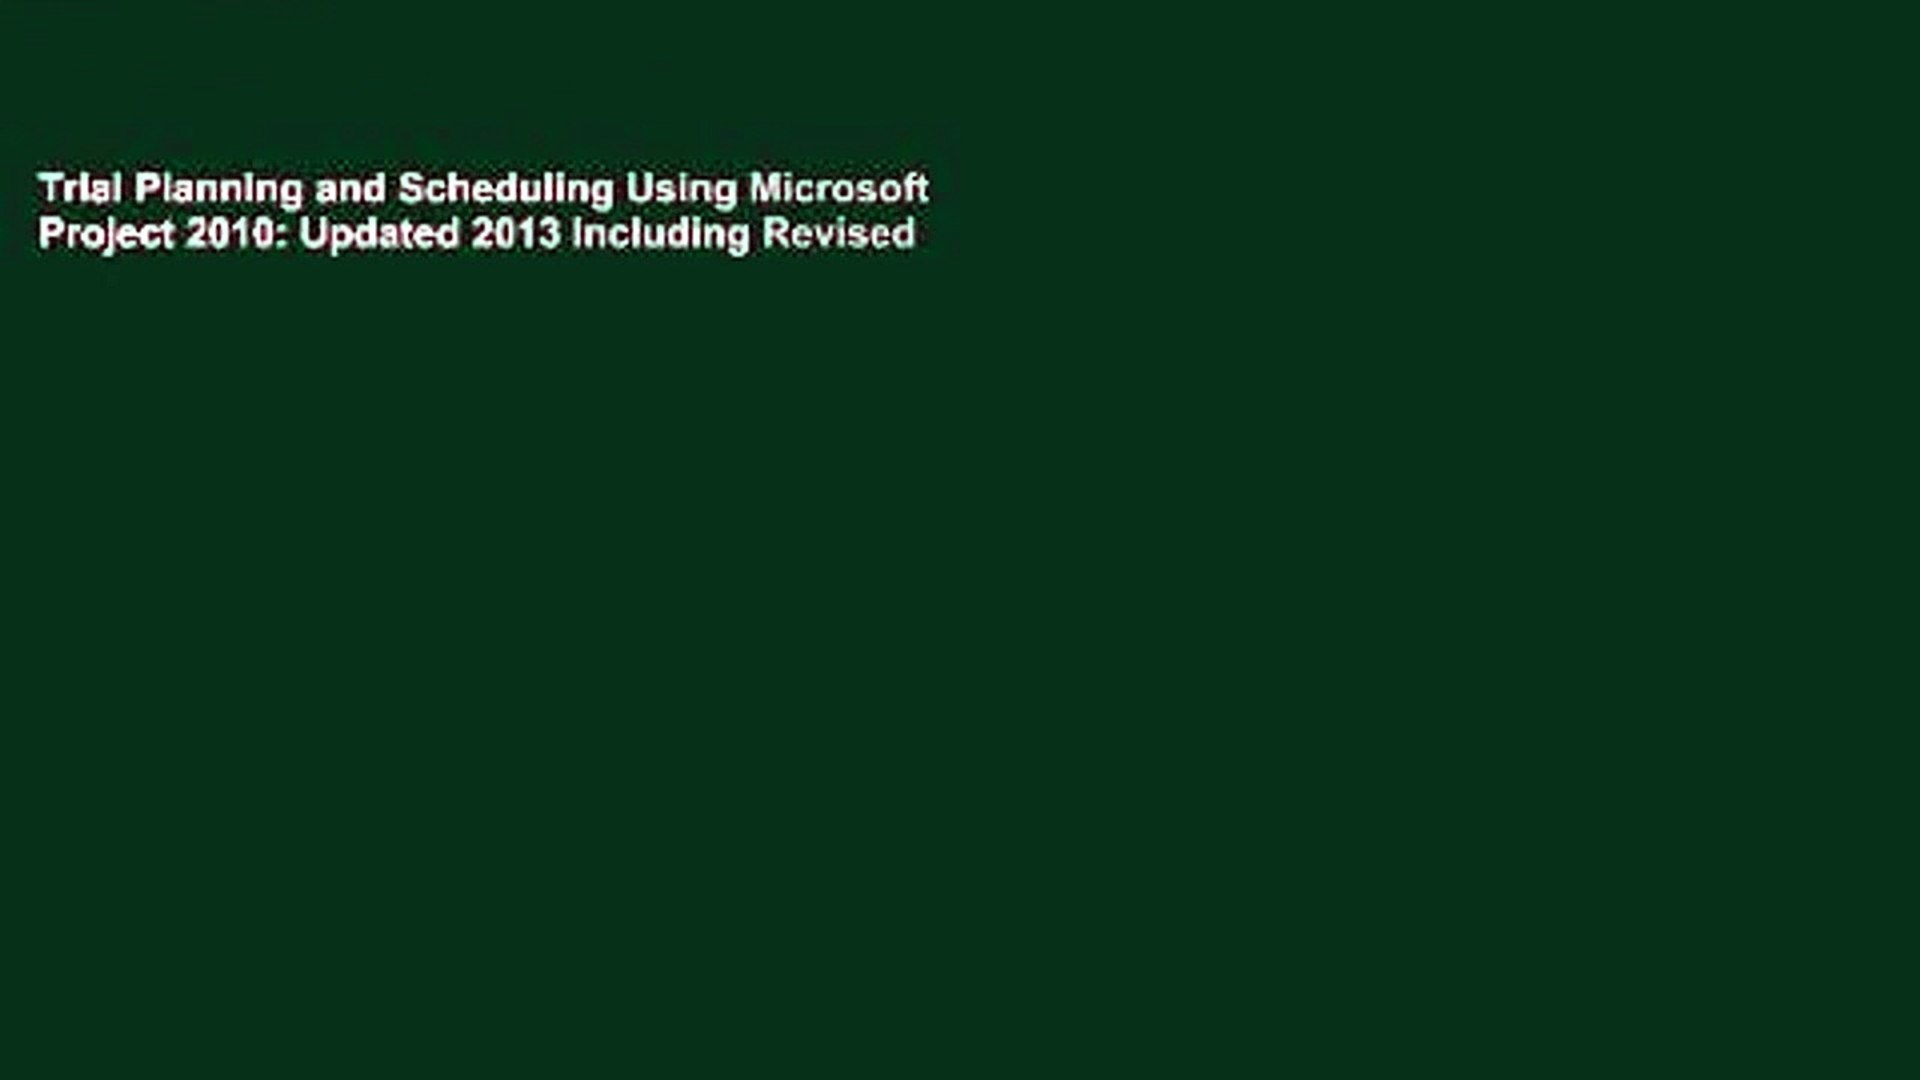 Trial Planning and Scheduling Using Microsoft Project 2010: Updated 2013  Including Revised